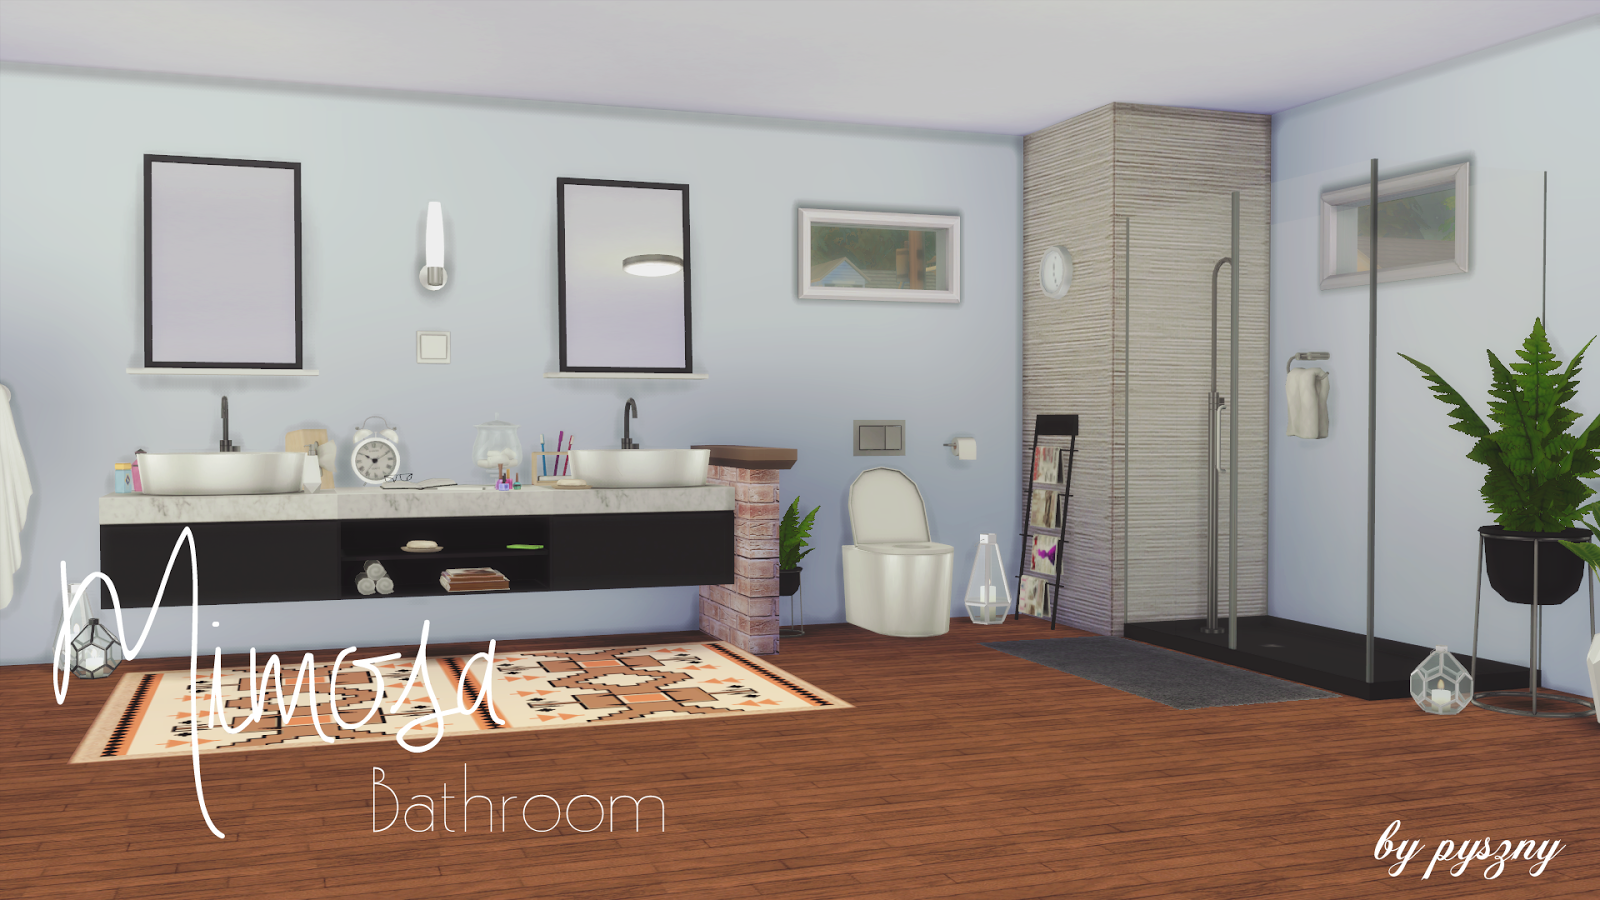 Mimosa Bathroom Set by Pyszny